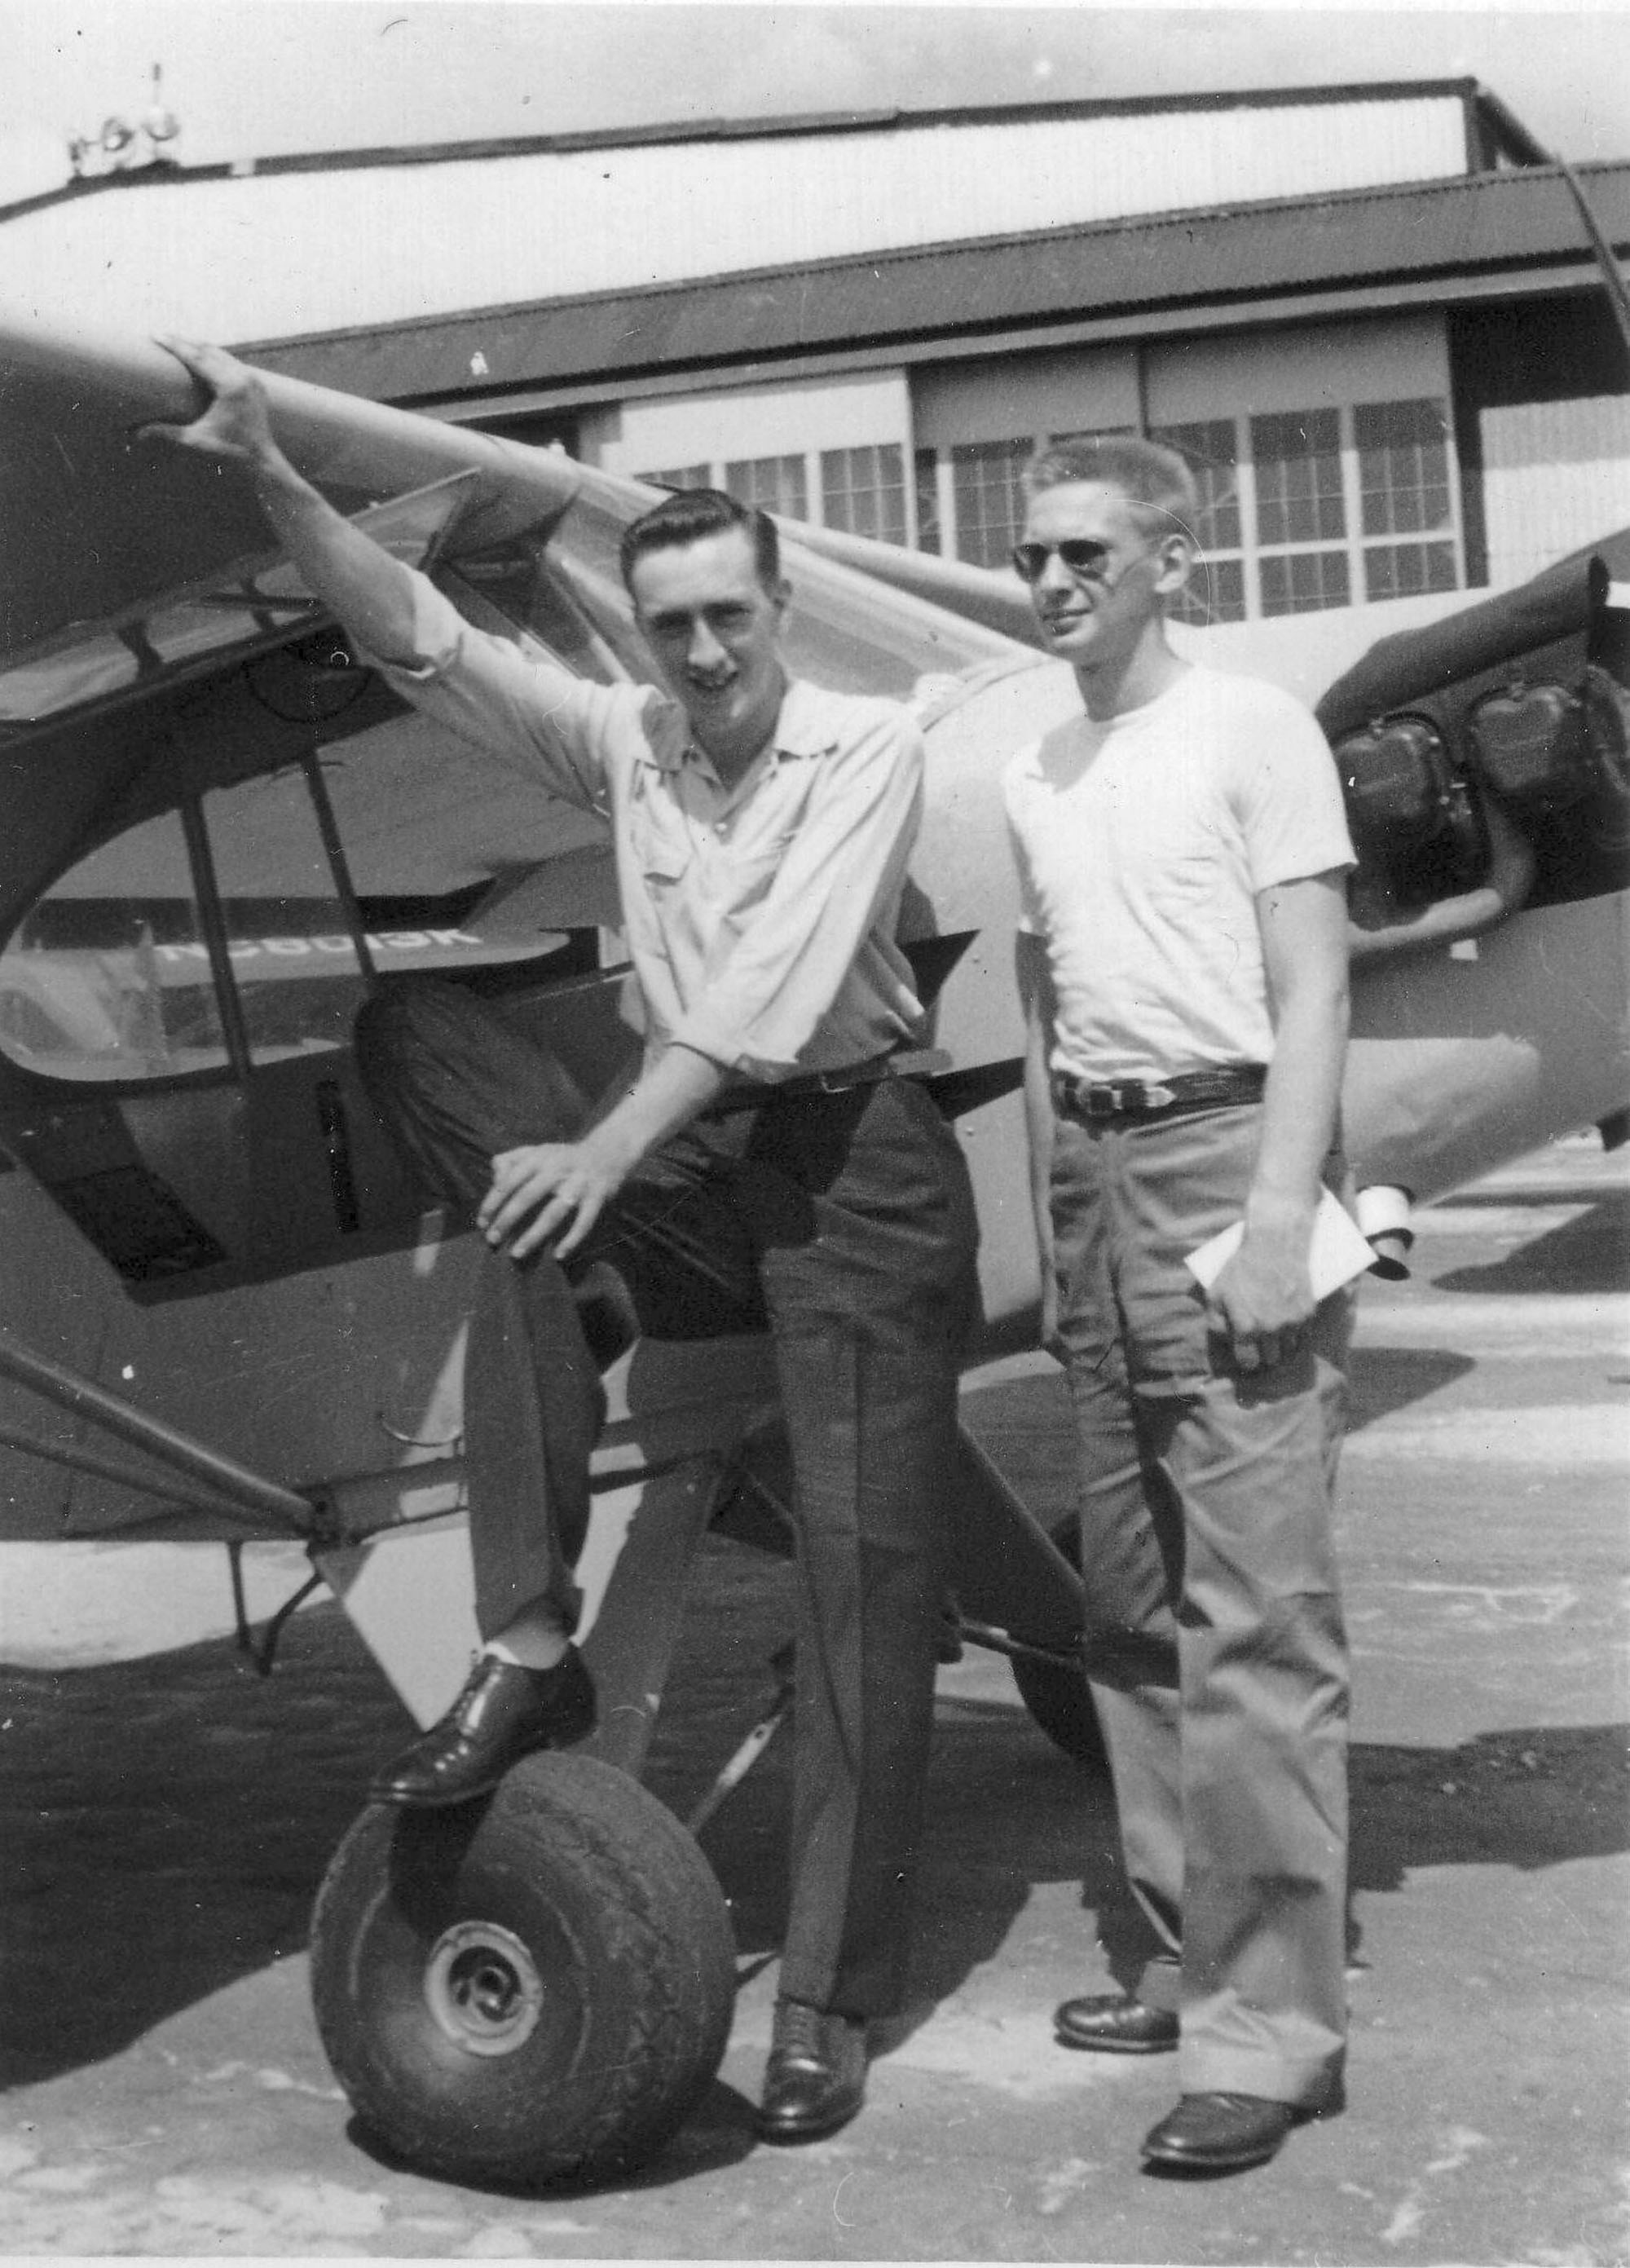 Learning to Fly in a Piper Cub in 1950